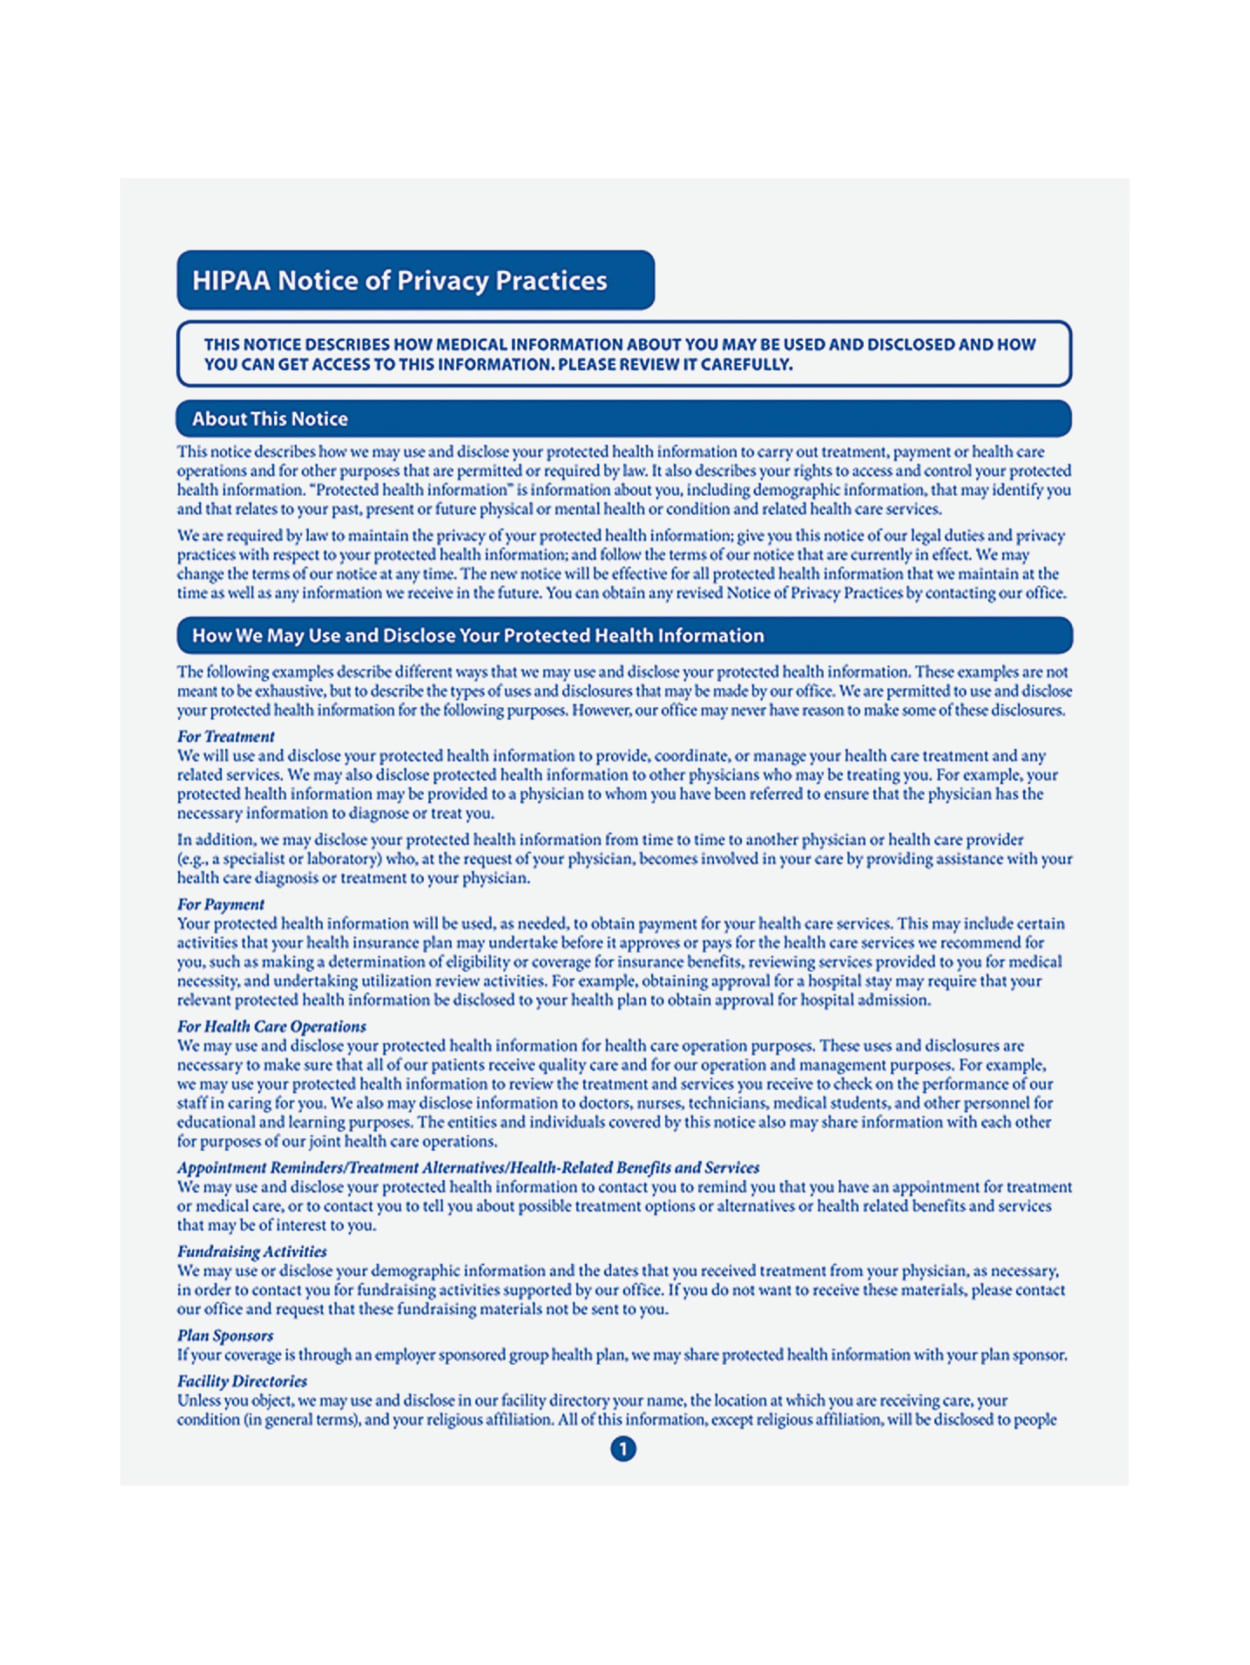 Hipaa Notice Of Privacy Practices Pdf 2021